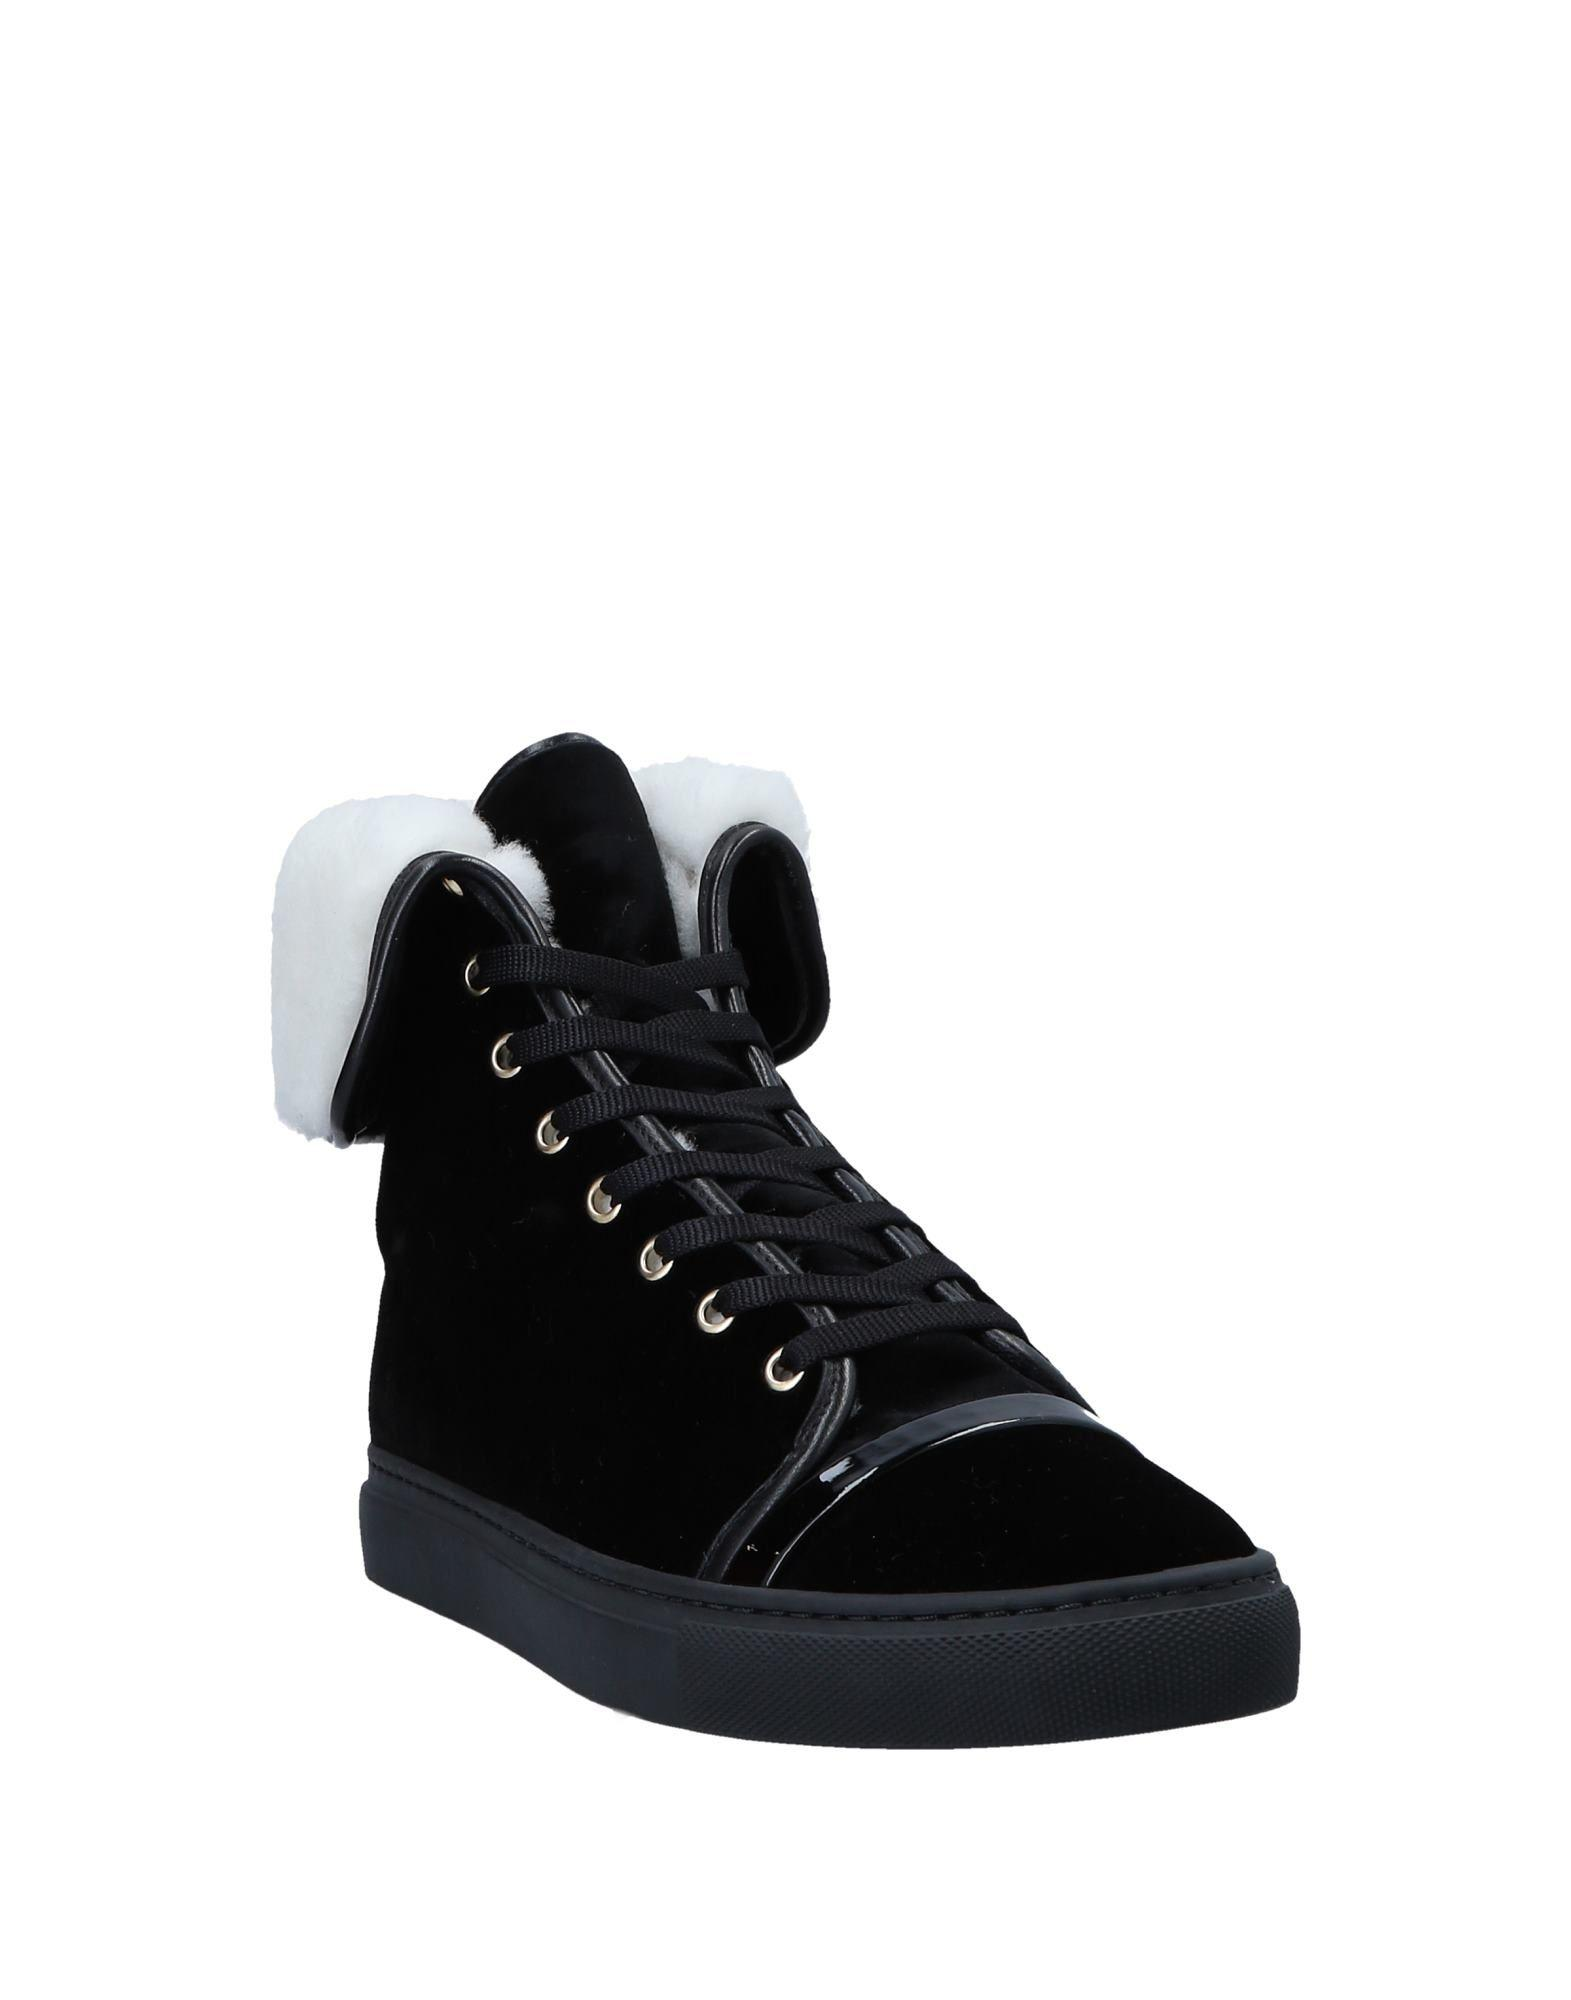 Lanvin Suede High-tops & Sneakers in Black